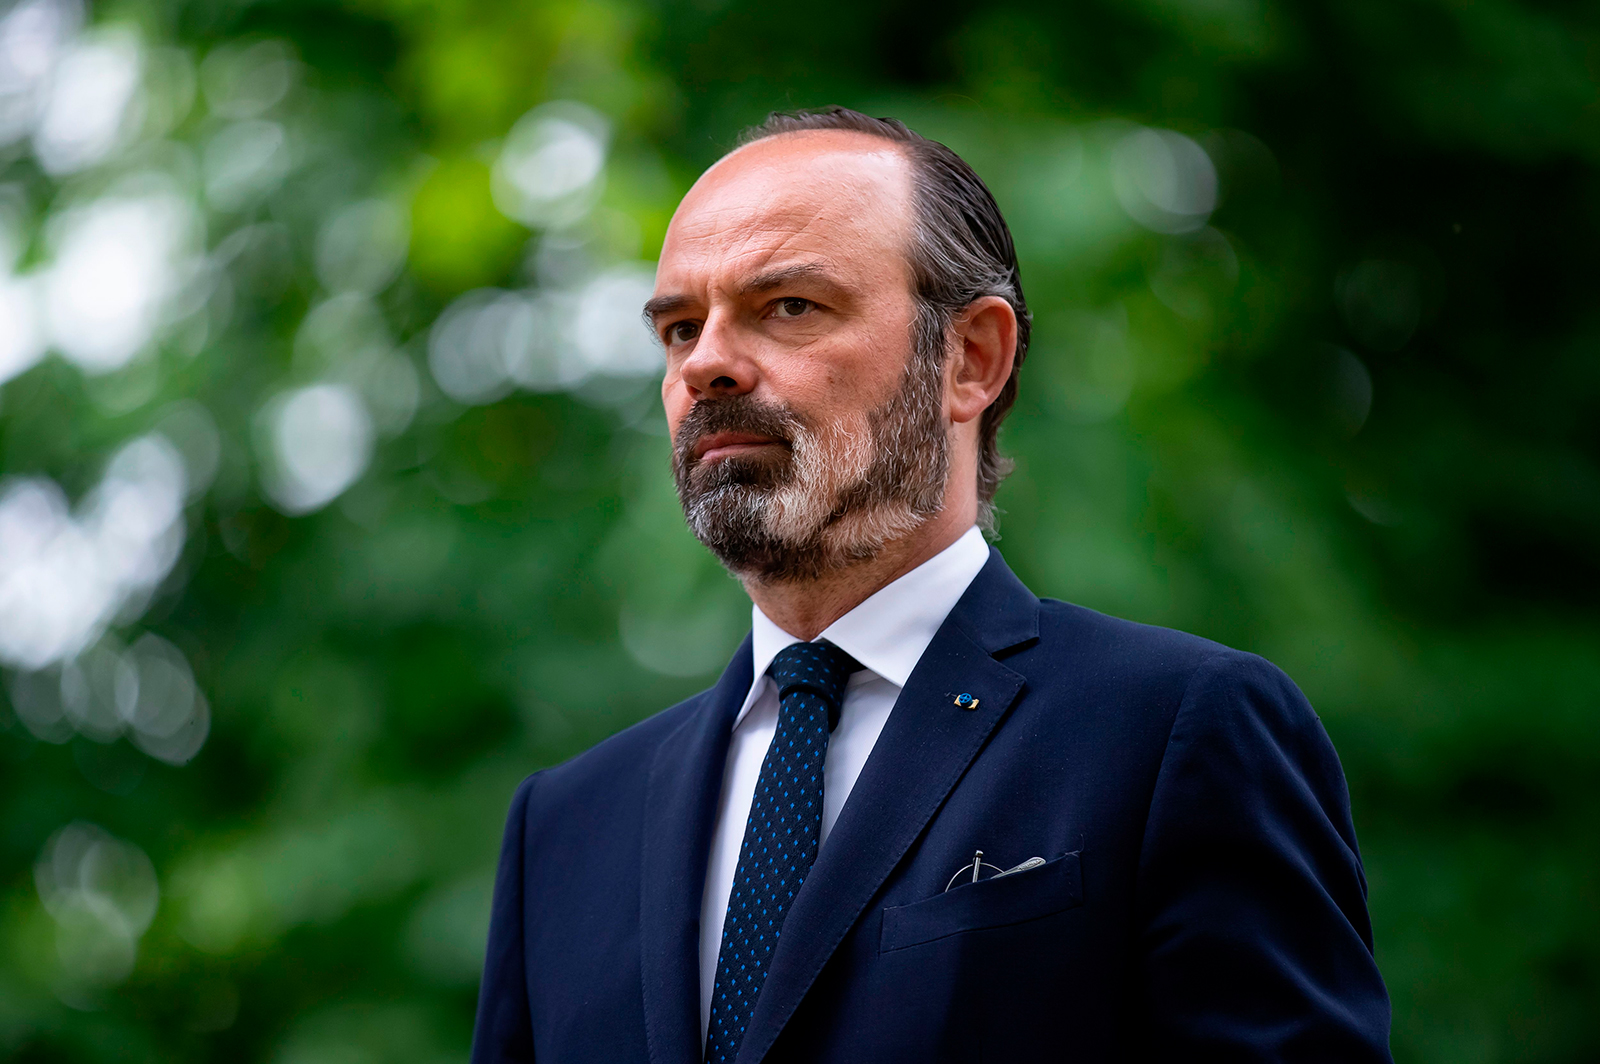 French Prime Minister Edouard Philippe, seen here in Paris on May 10, said cafés and restaurants in green zones would reopen on June 2 as long as the situation doesn't deteriorate.